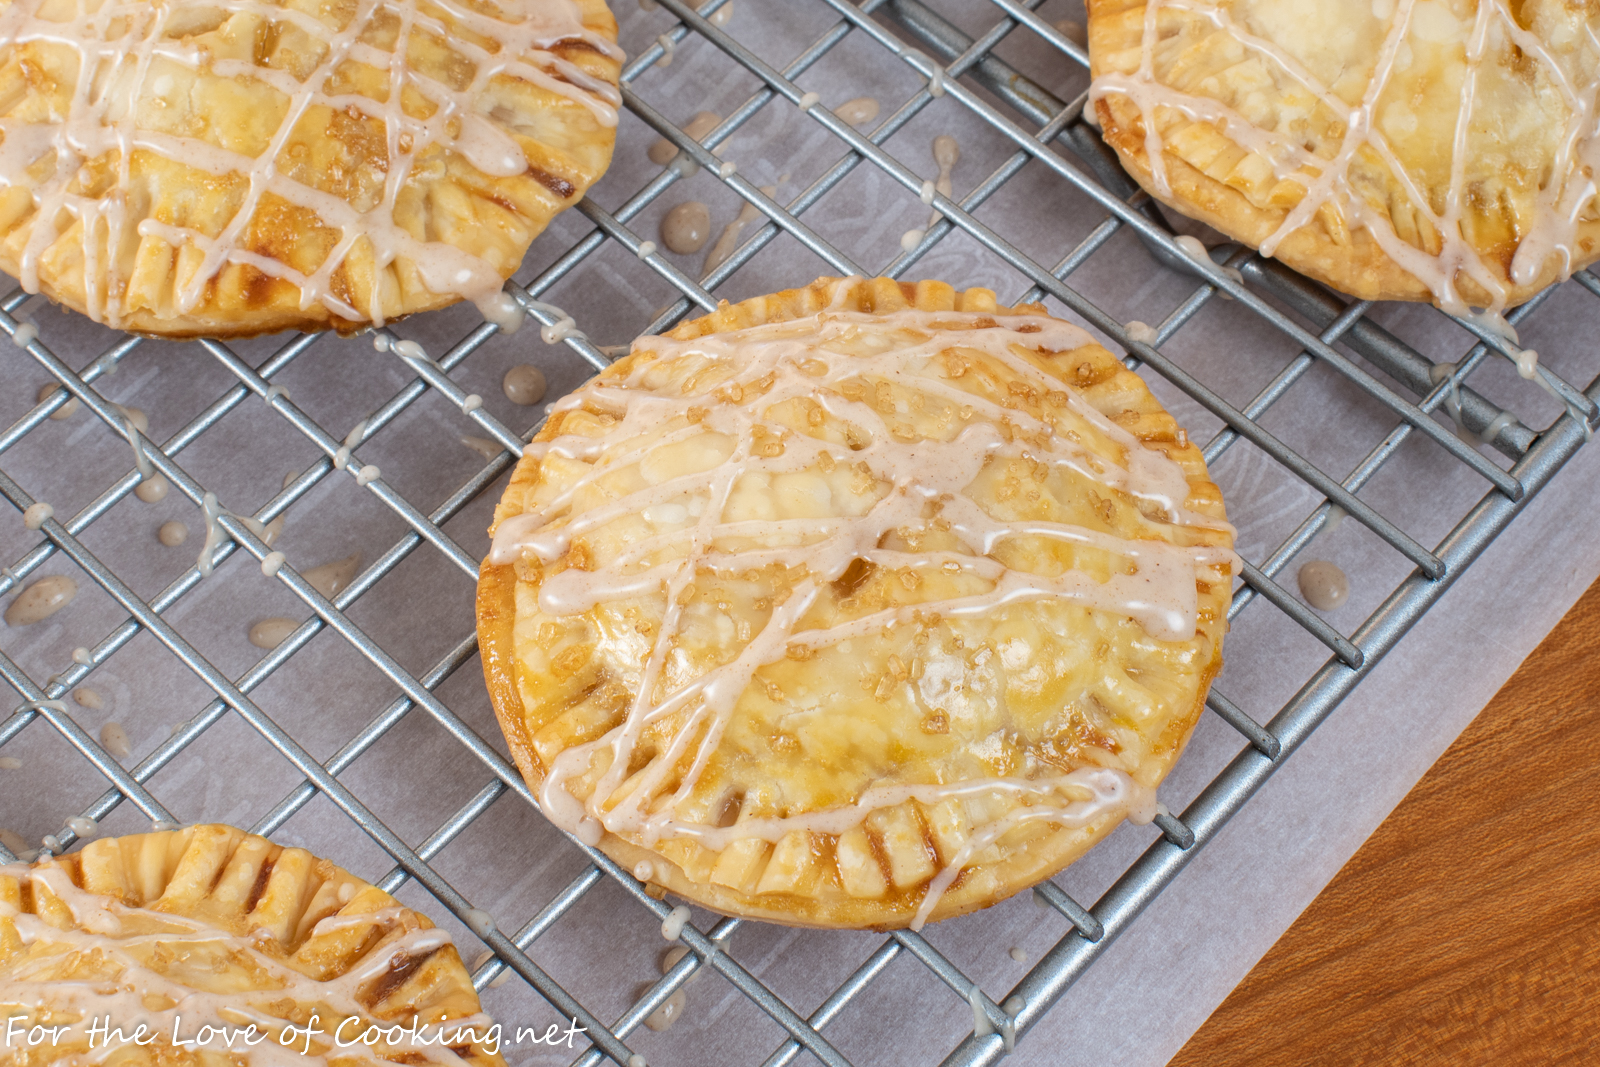 Peach Hand Pies with Cinnamon Glaze